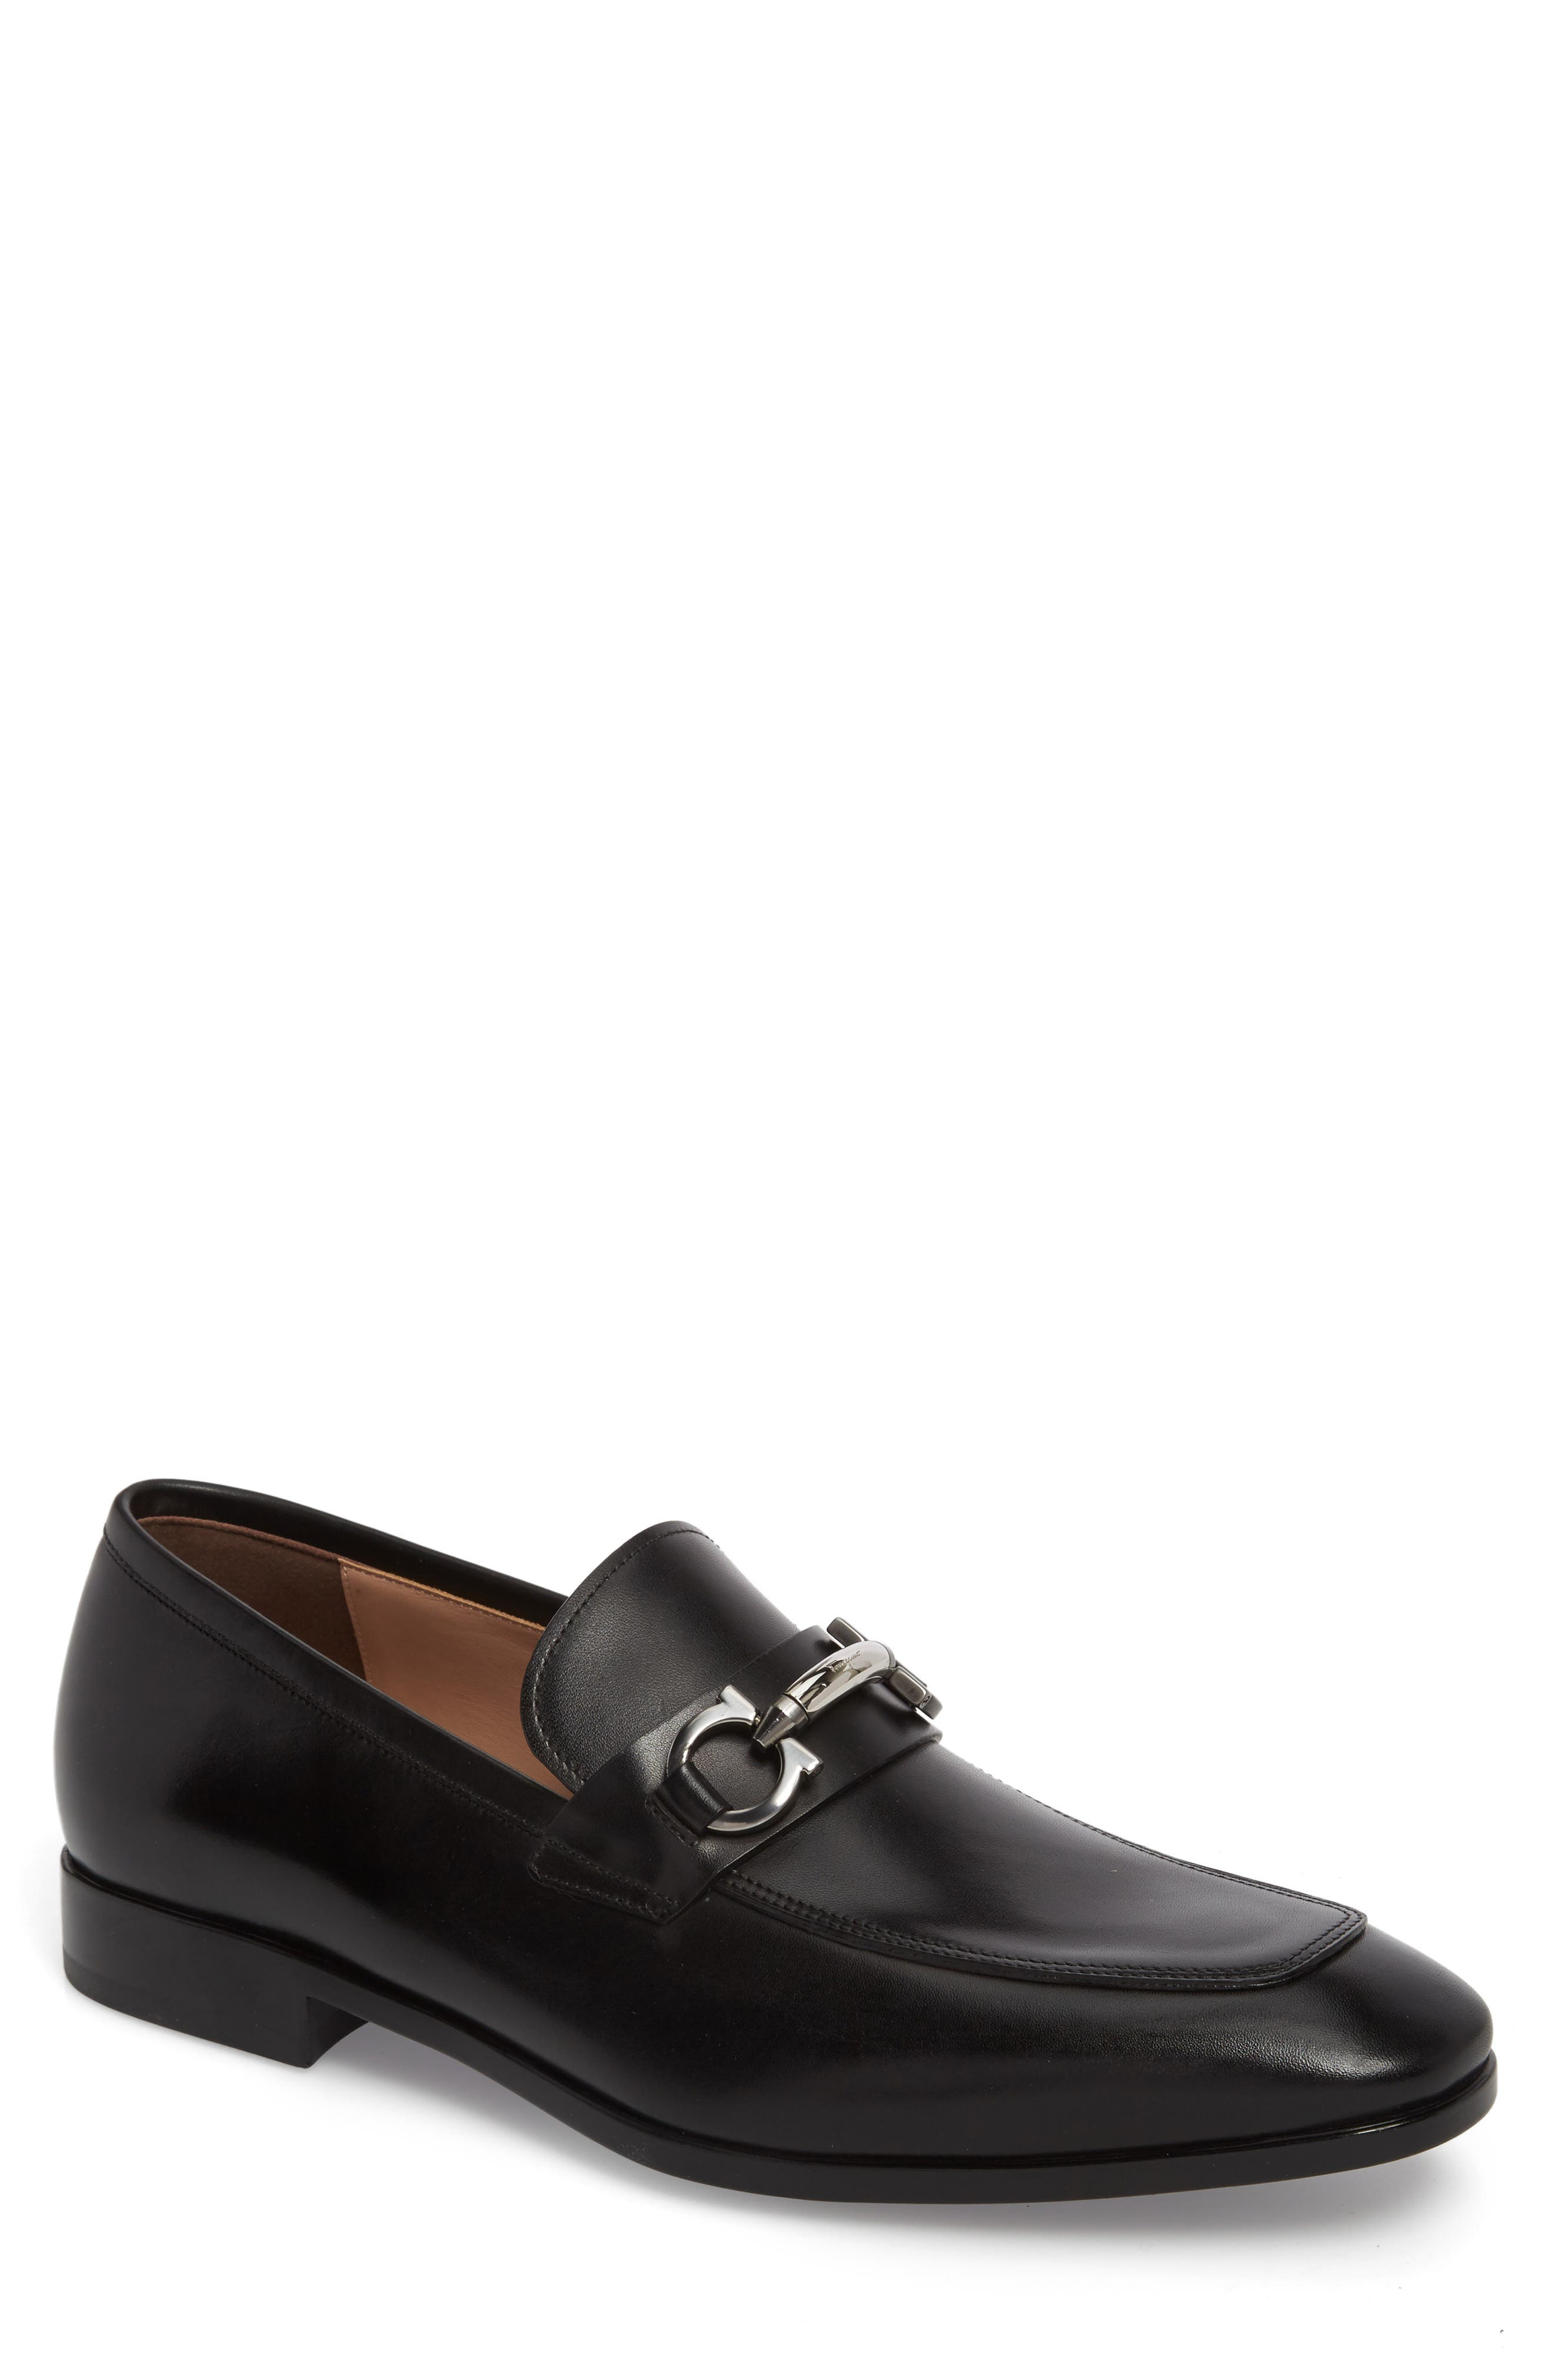 SALVATORE FERRAGAMO, Benford Rounded Bit Loafer, Main thumbnail 1, color, NERO LEATHER